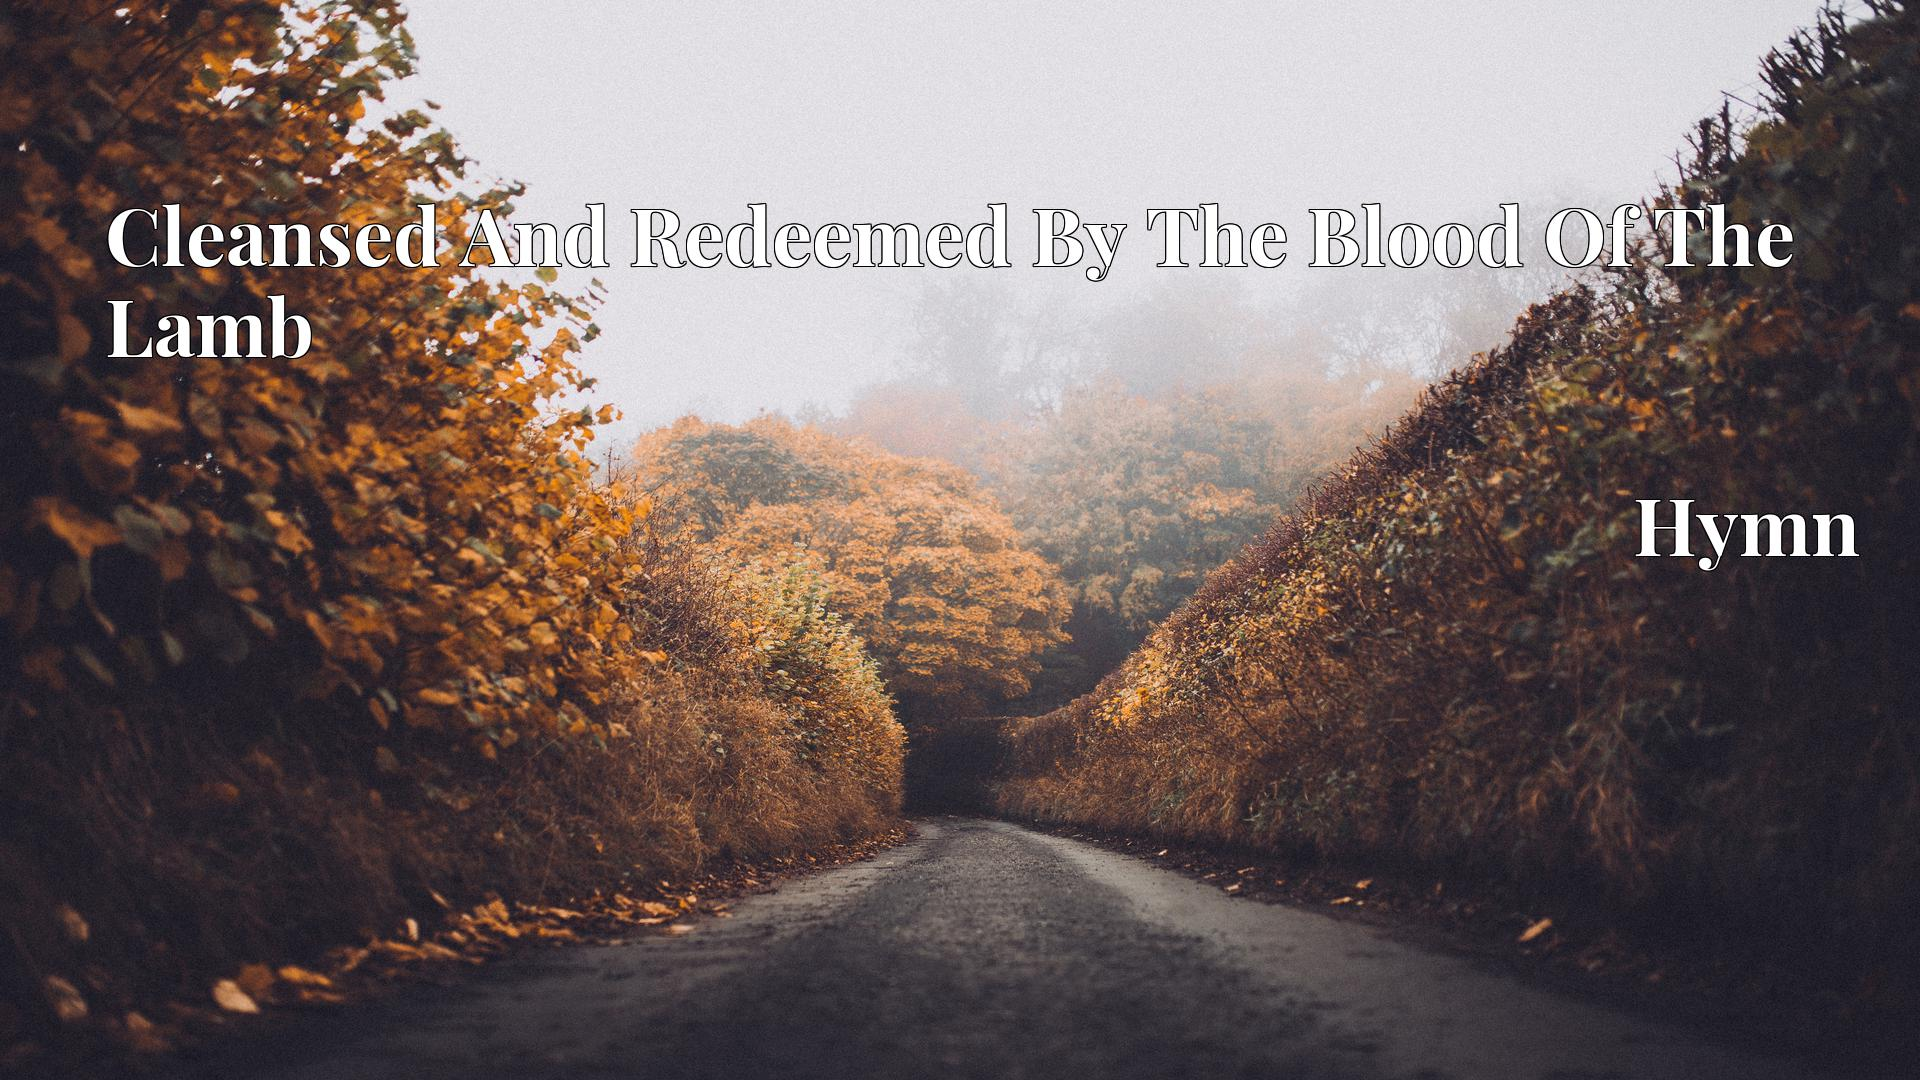 Cleansed And Redeemed By The Blood Of The Lamb - Hymn